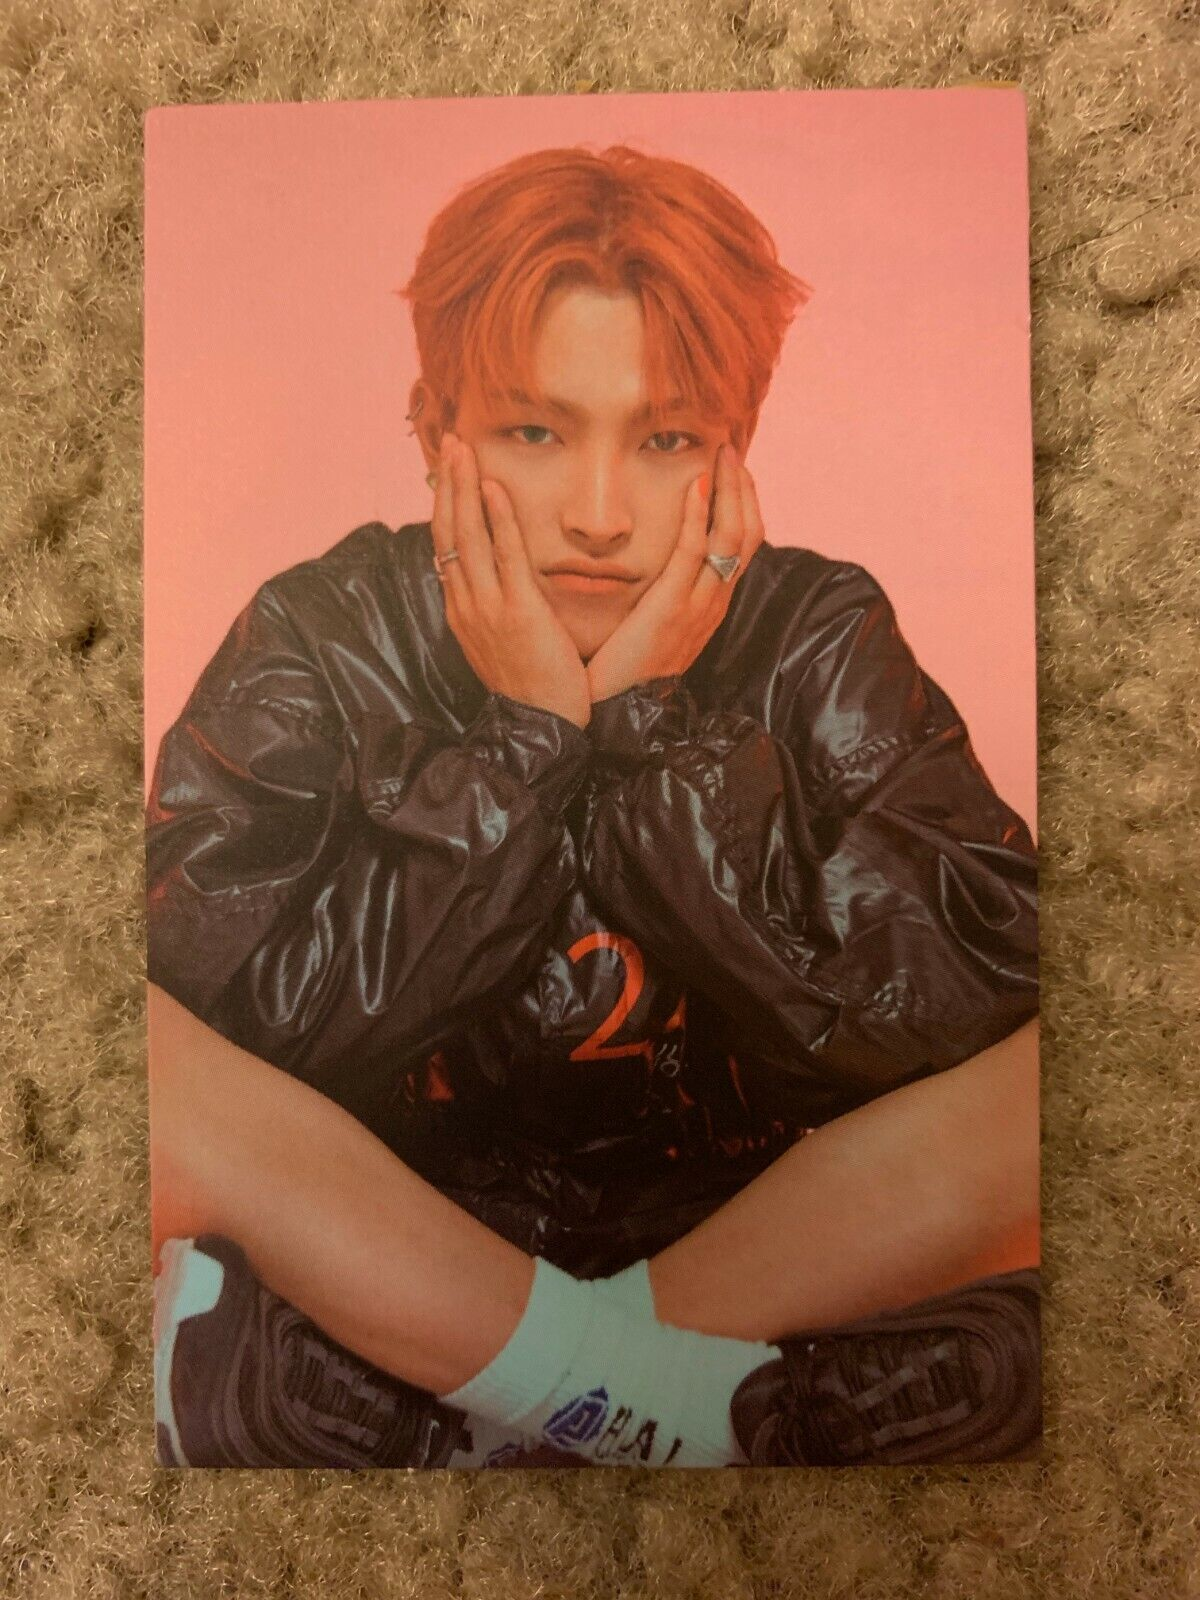 ***UPDATED***ATEEZ One To All Treasure EP. 3 Photocards (DM for Stamp Shipping) Hongjoong Illusion